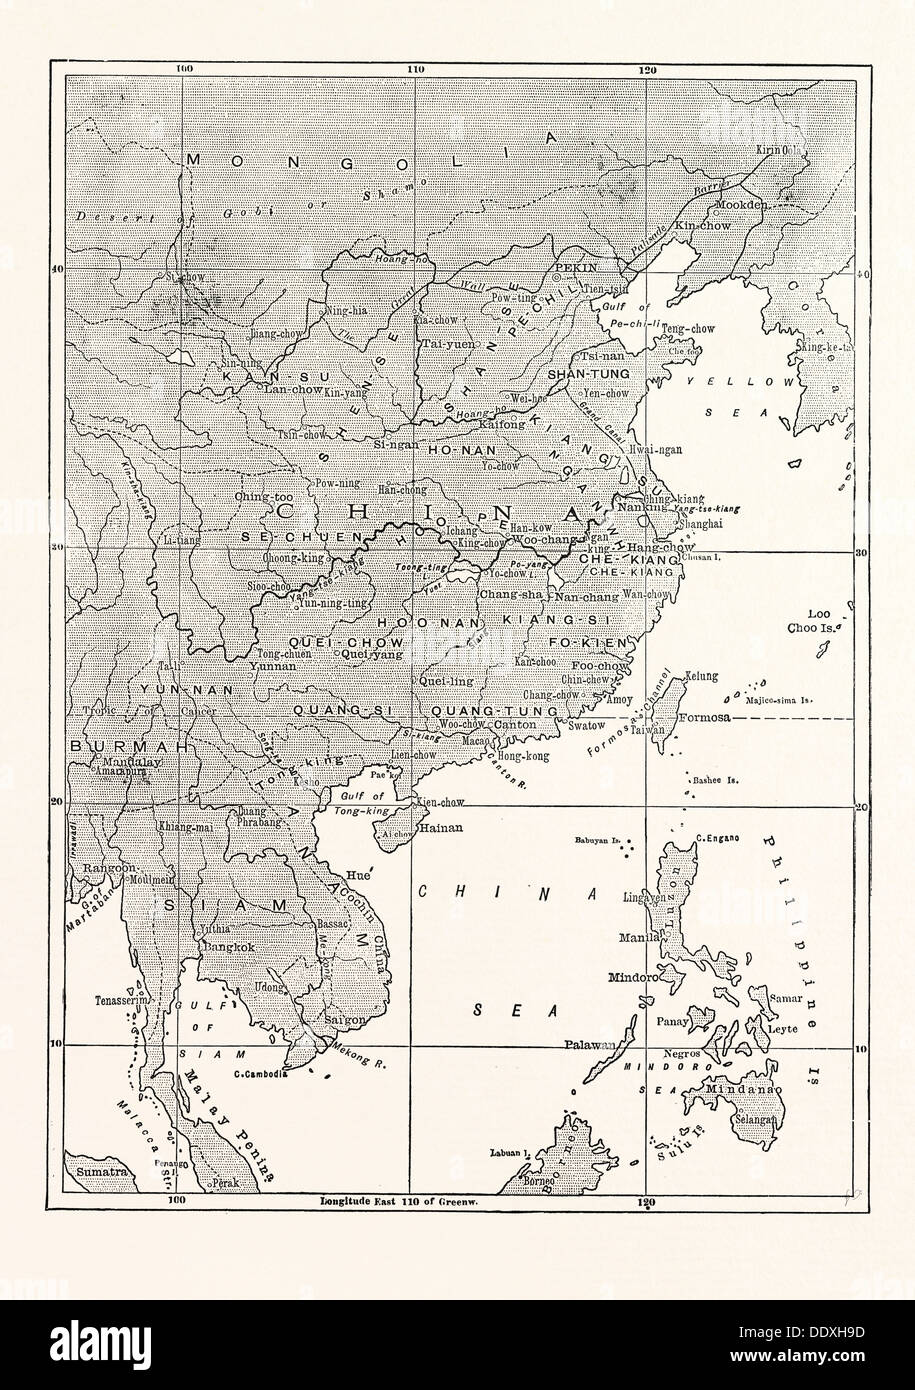 MAP OF CHINA AND SOME OF THE ADJOINING COUNTRIES - Stock Image